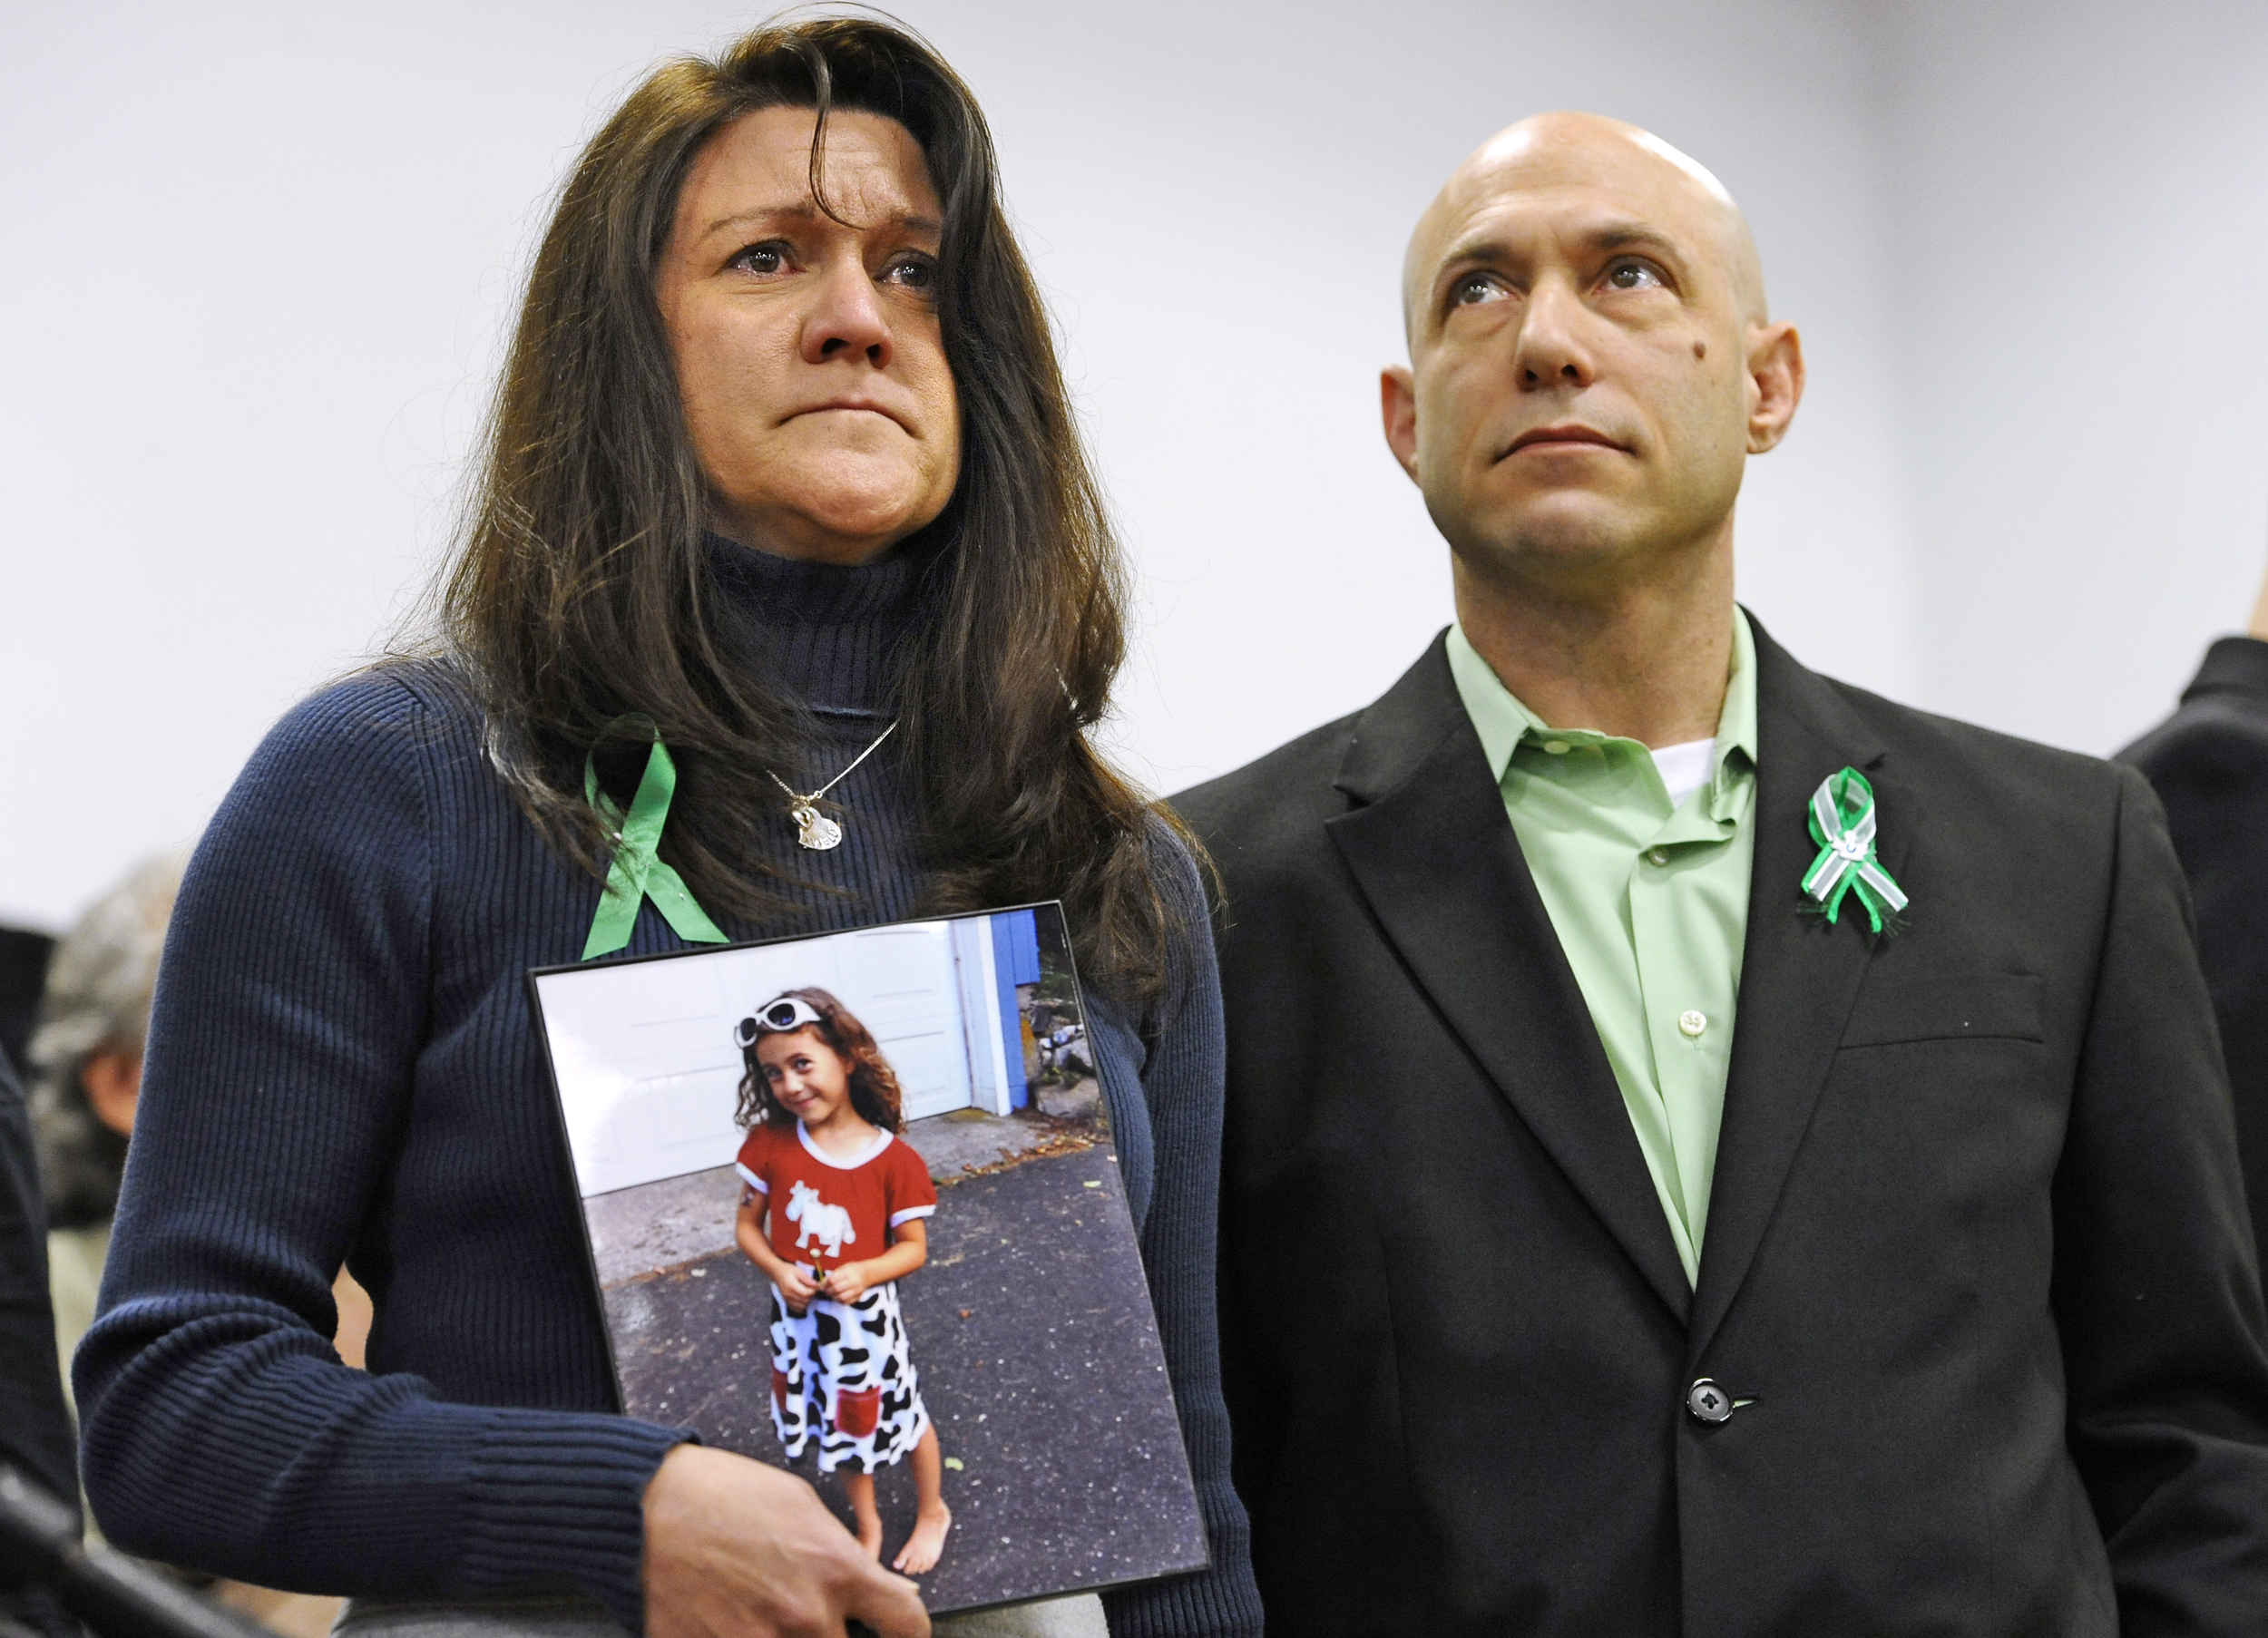 nbcnews.com - Father of Sandy Hook shooting victim found dead in suspected suicide